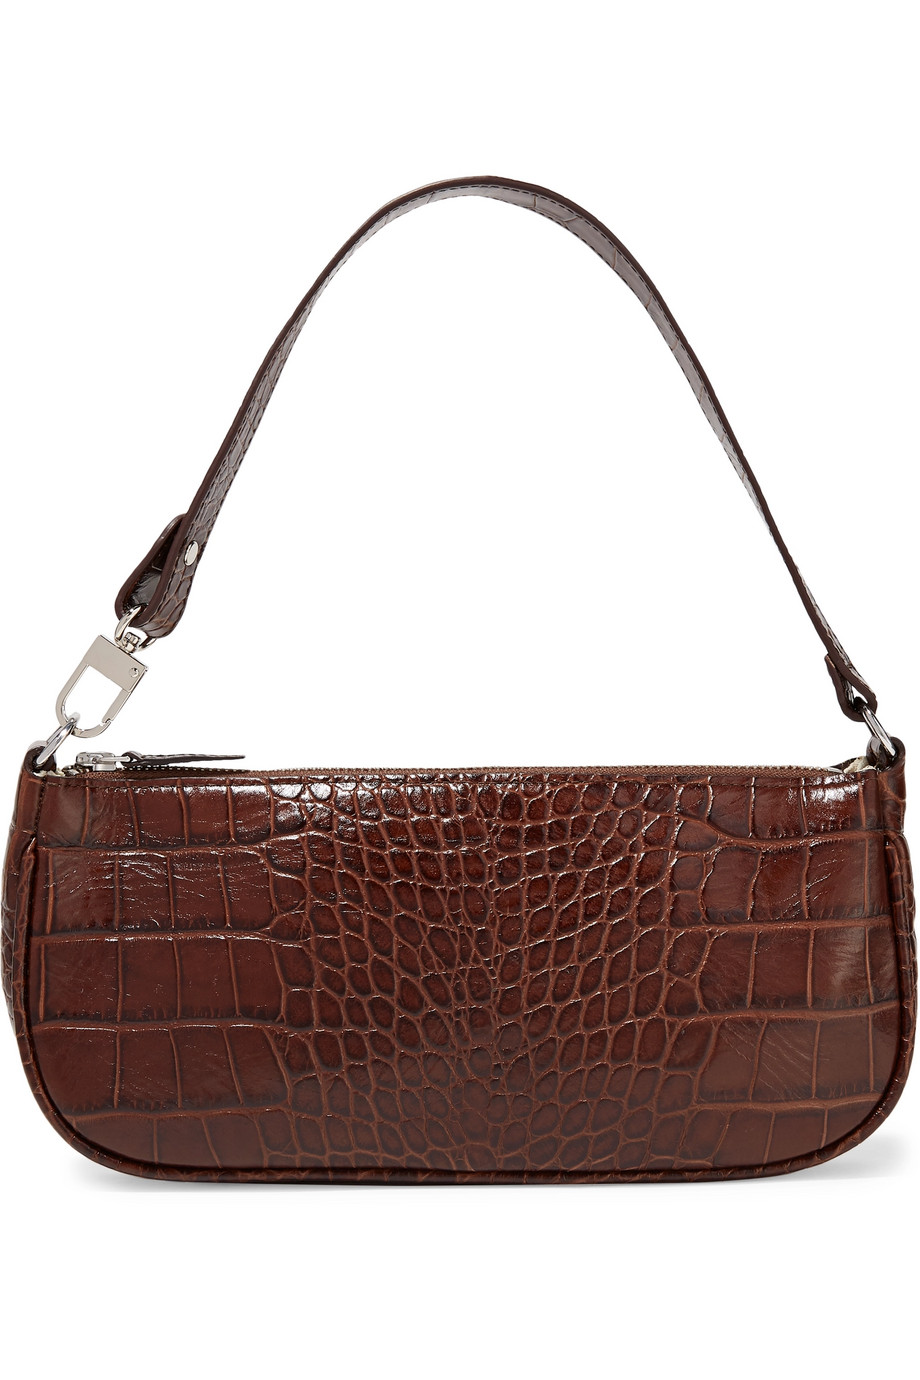 Rachel croc-effect leather shoulder bag by By-Far, available on net-a-porter.com for $365 Kendall Jenner Bags Exact Product